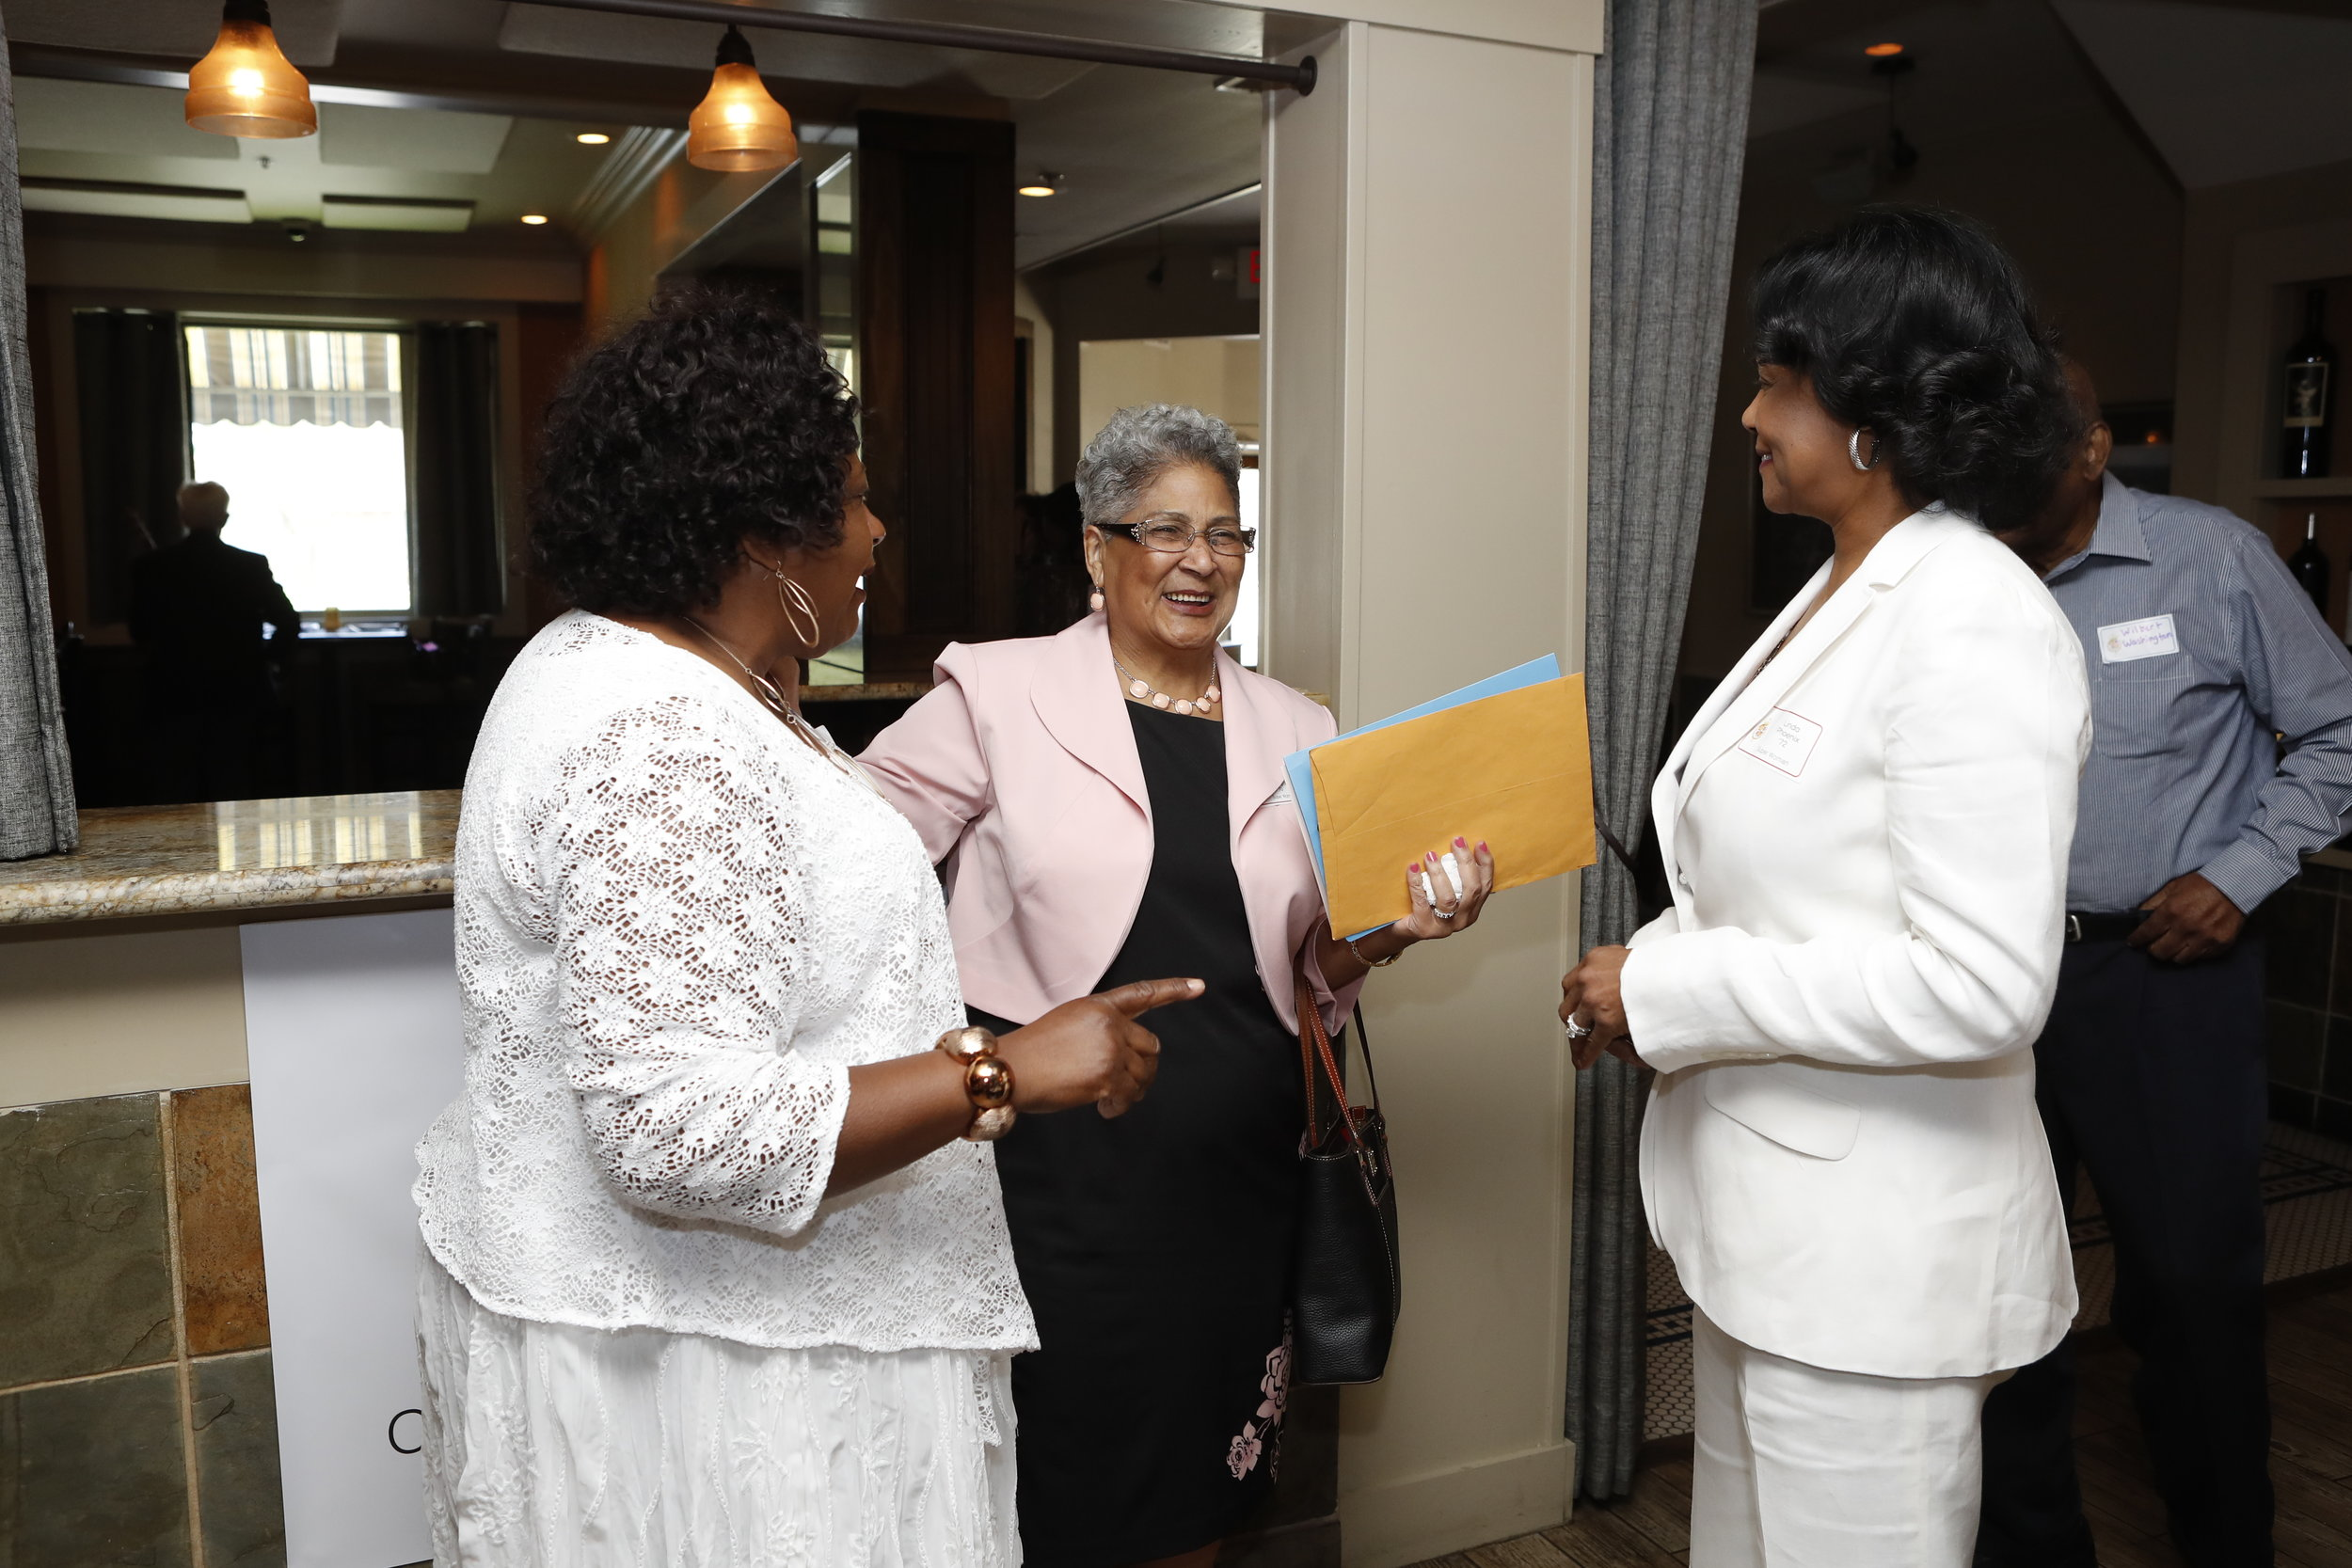 Connie Payton-Nevels, Lorraine Washington and Linda Phoenix Teamer